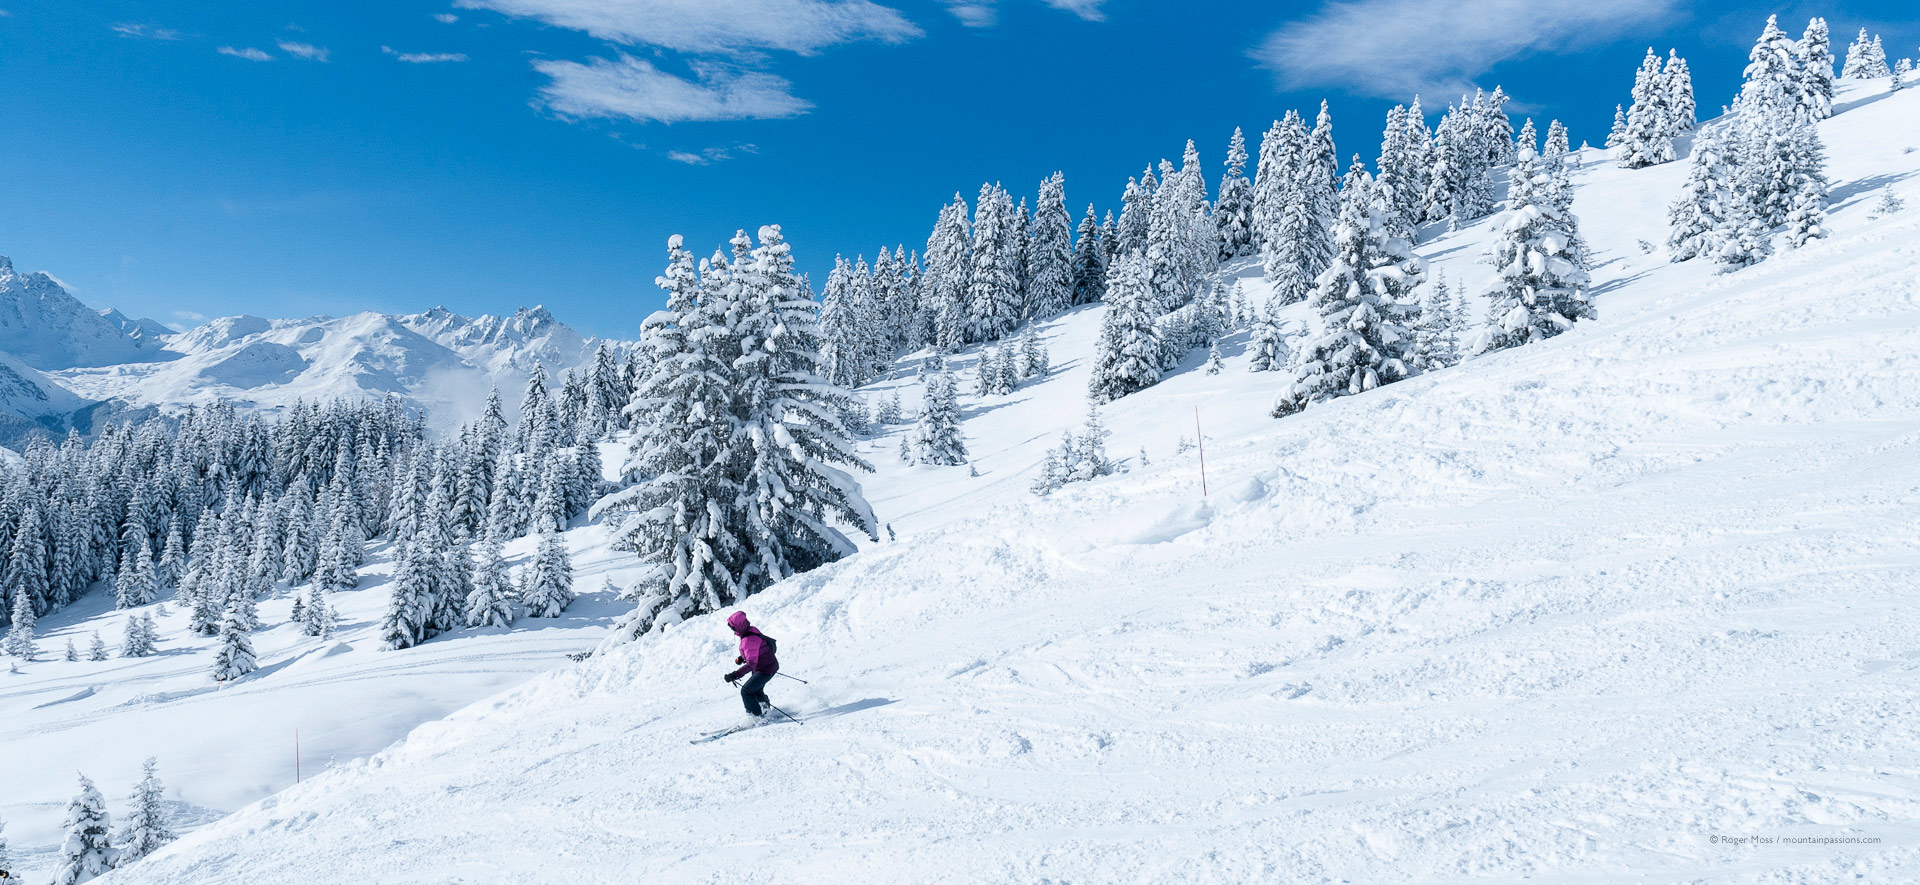 Skier on fresh snow with snow-dusted pine trees.